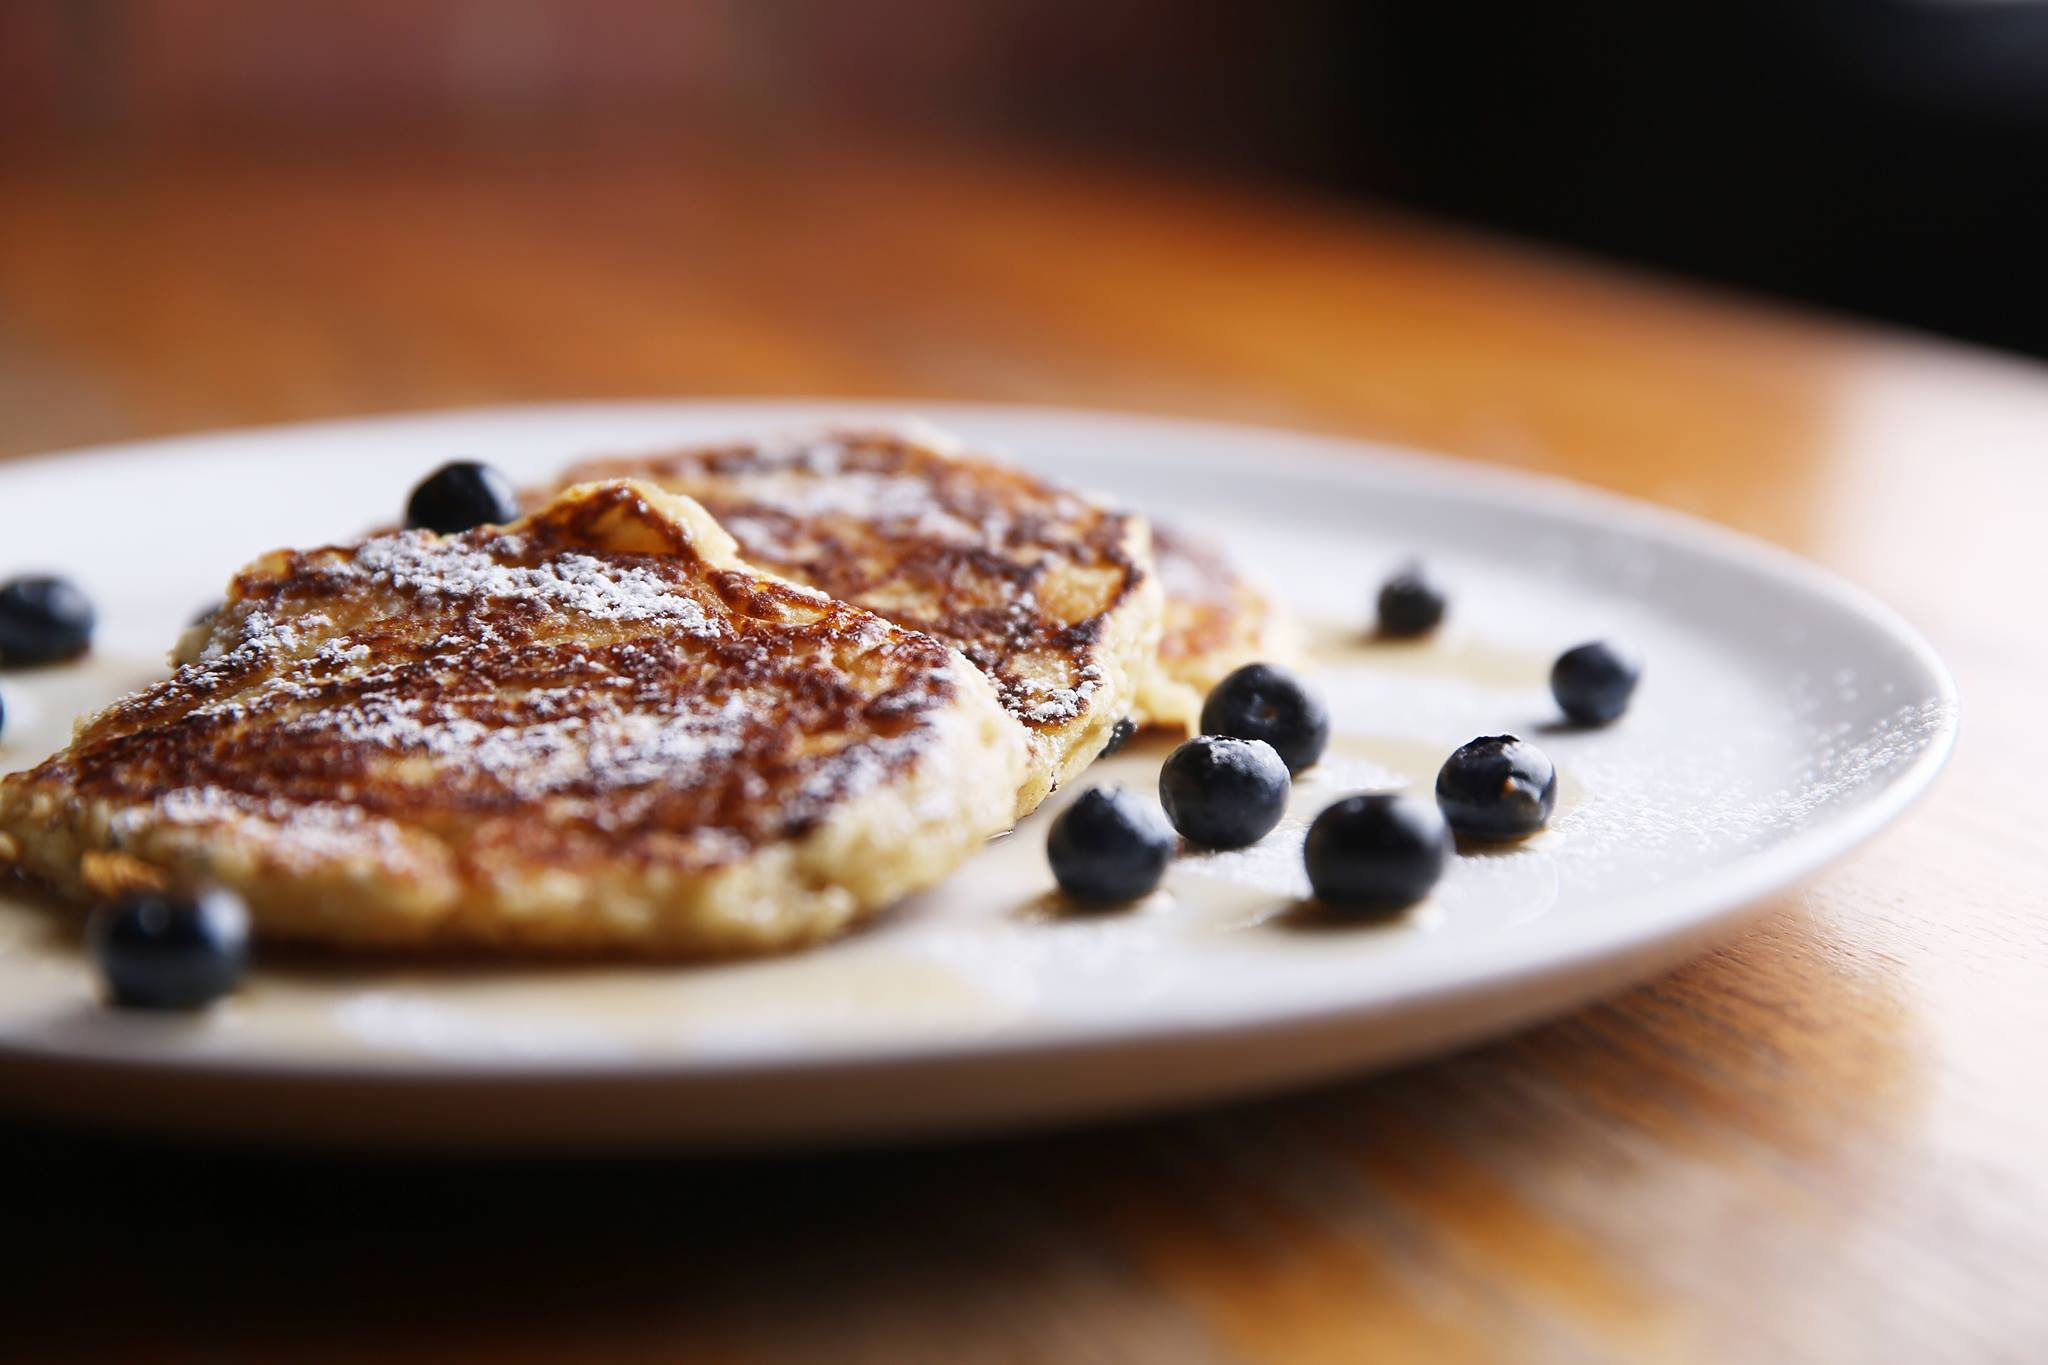 Where to Find the Best Pancakes in Manchester